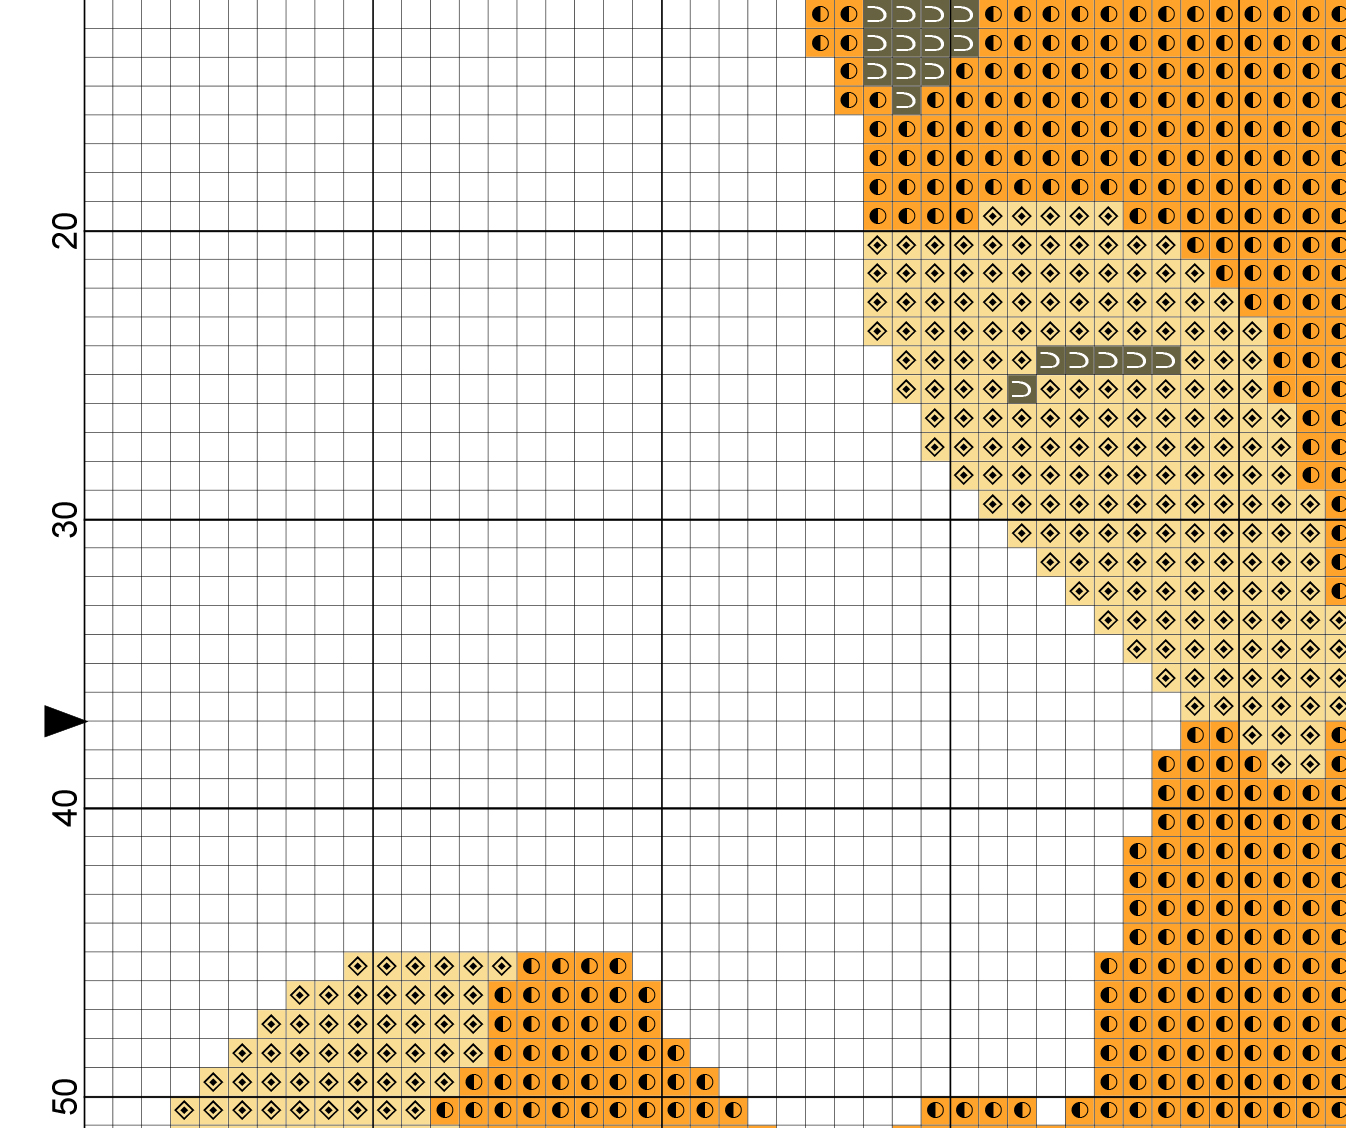 needlepoint stitches stitch diagrams carling technologies rocker switch wiring diagram red fox cross pattern  daily